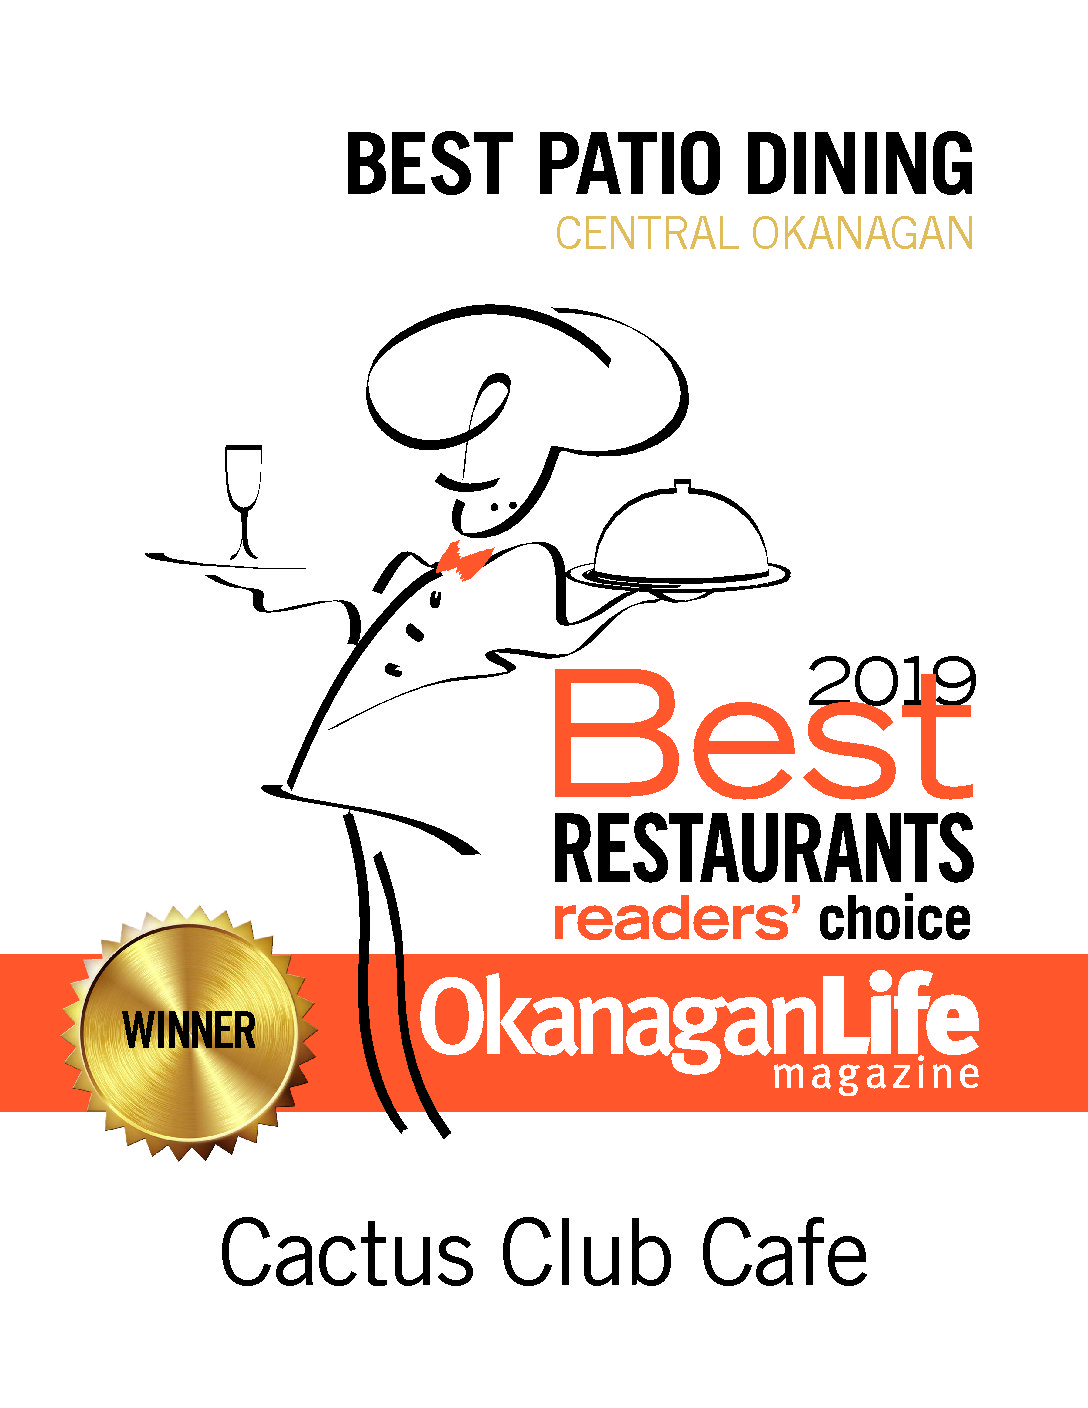 Best Patio Dining in the Okanagan